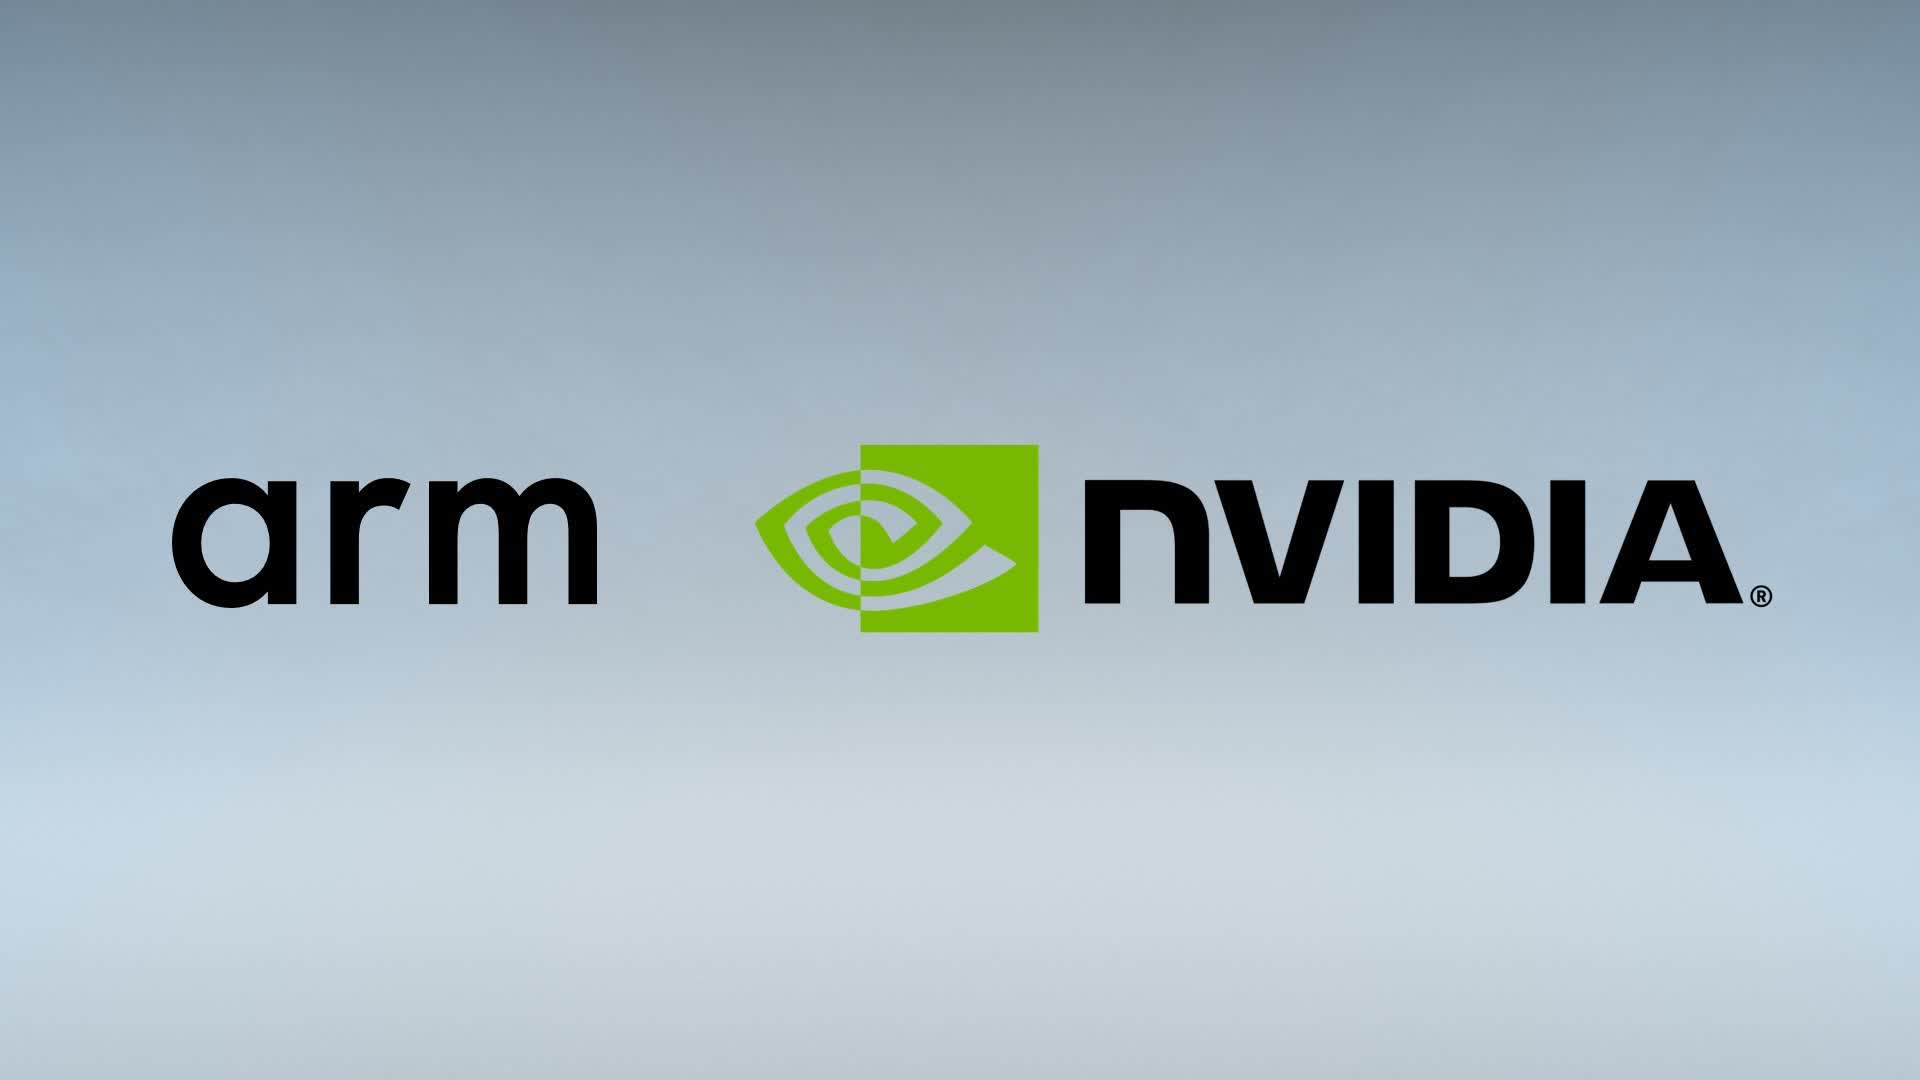 It's official: Nvidia is acquiring Arm